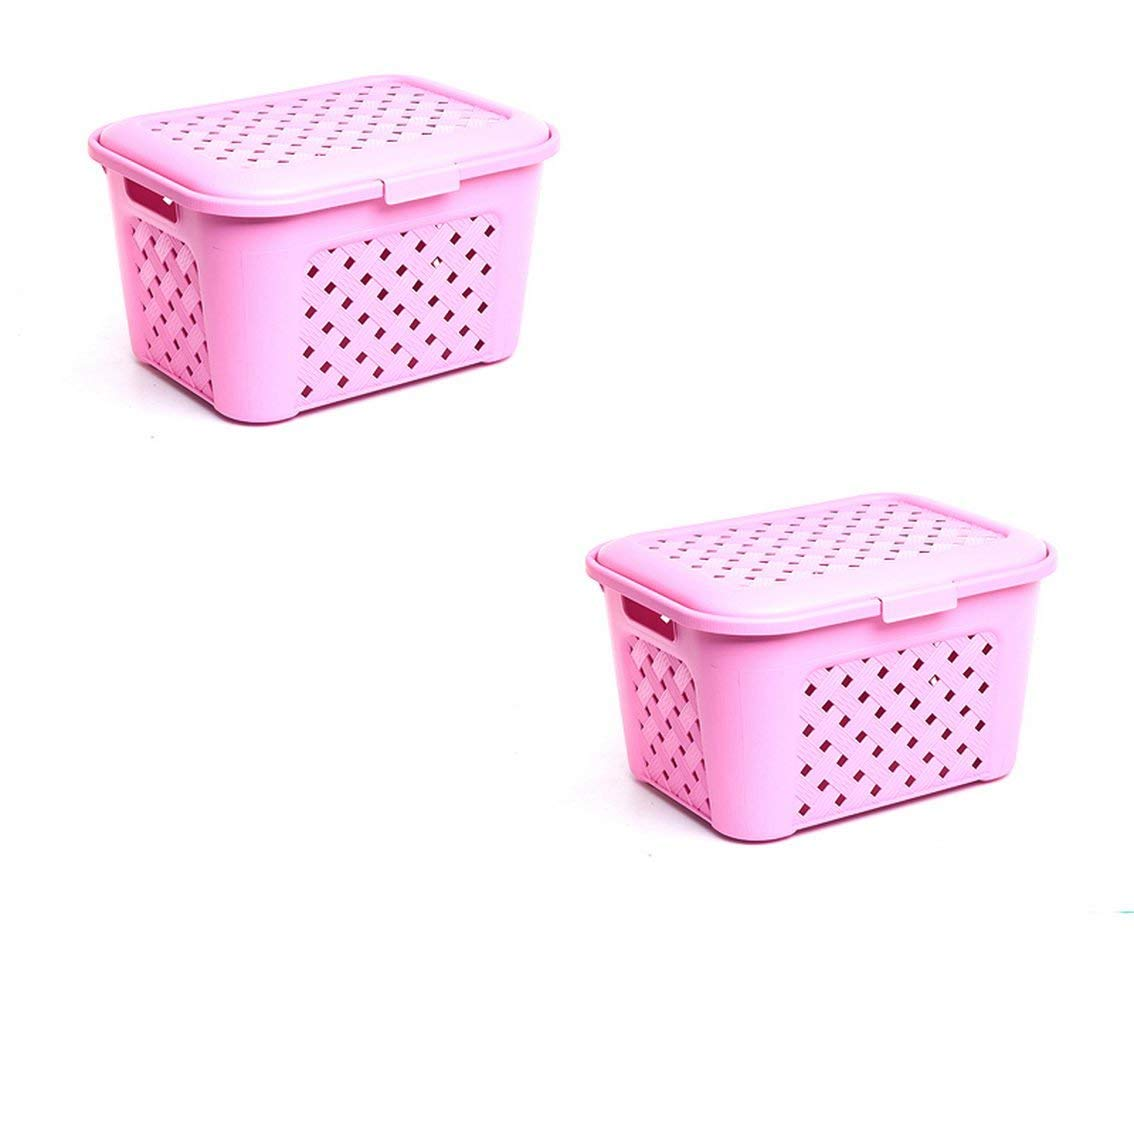 jii2030shann Covered plastic box clothing clothes box storage box storage compartment storage box under the bed rattan basket storage box finishing box storage box storage b